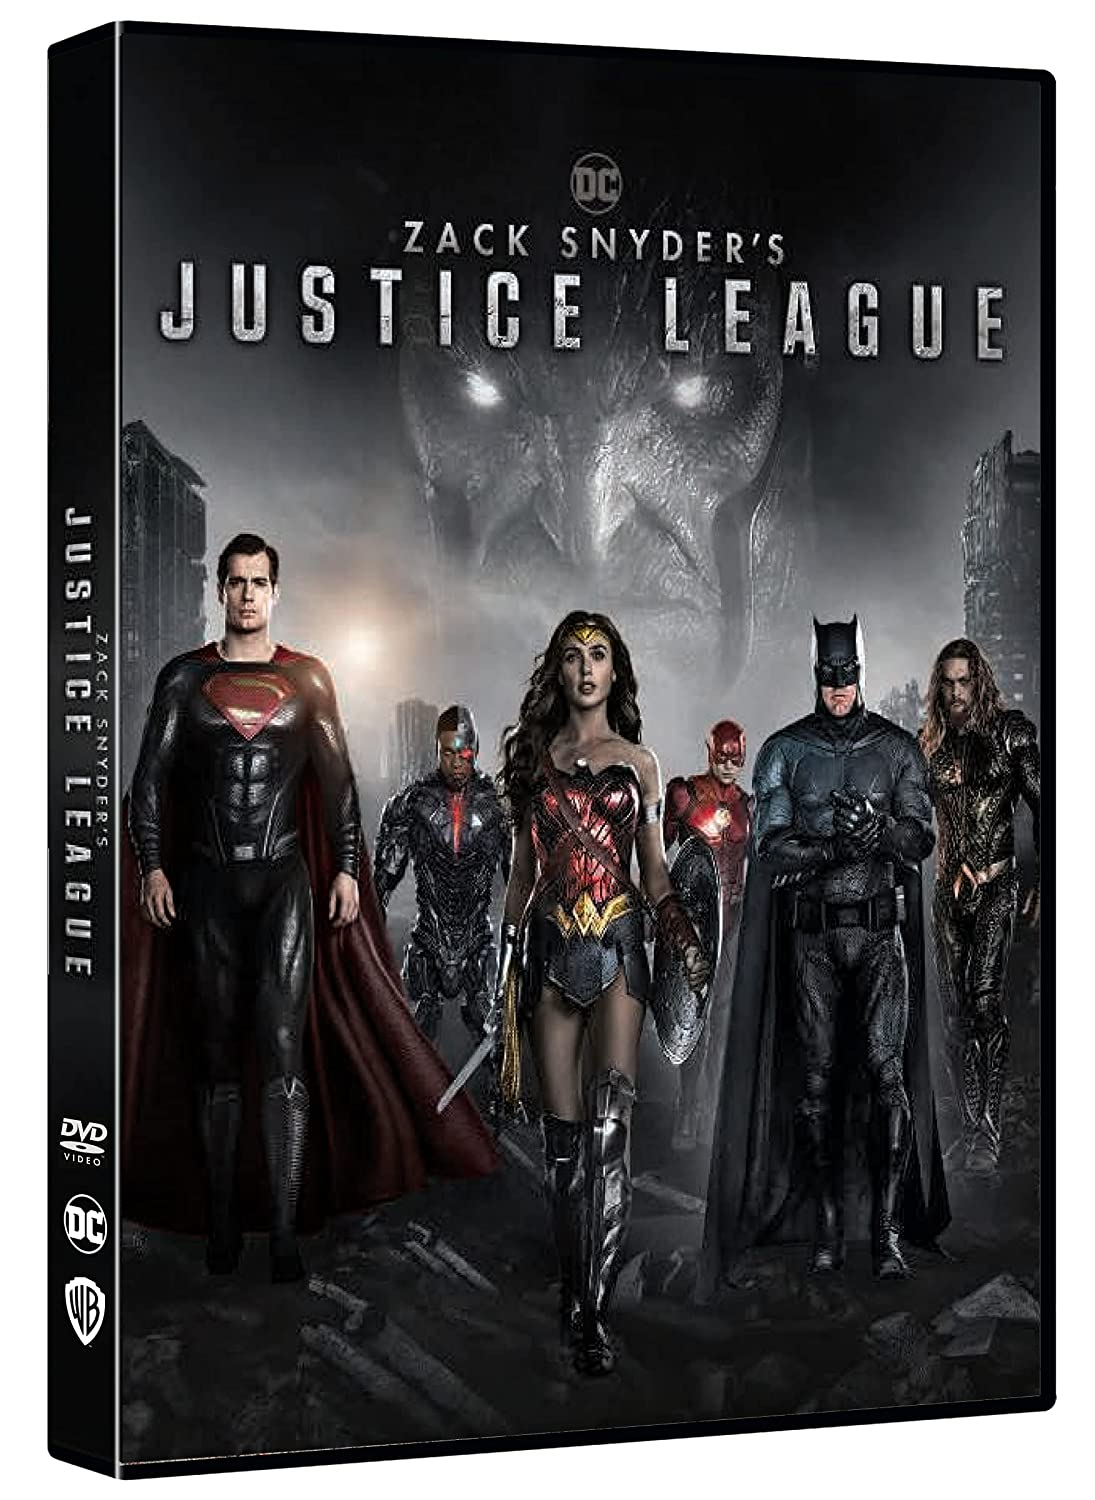 ZACK SNYDER'S JUSTICE LEAGUE (2DVD) (DVD)